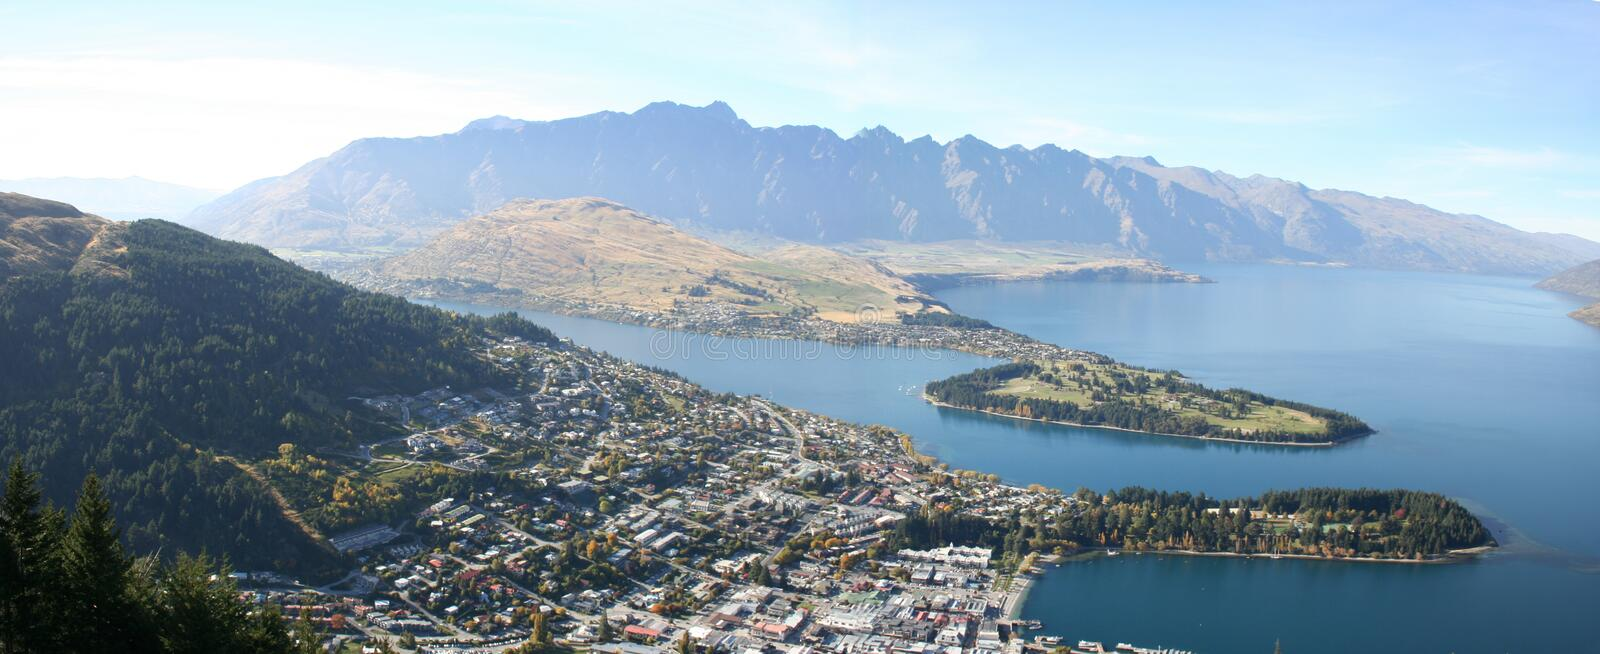 Panorama - Queenstown, New Zealand stock photography